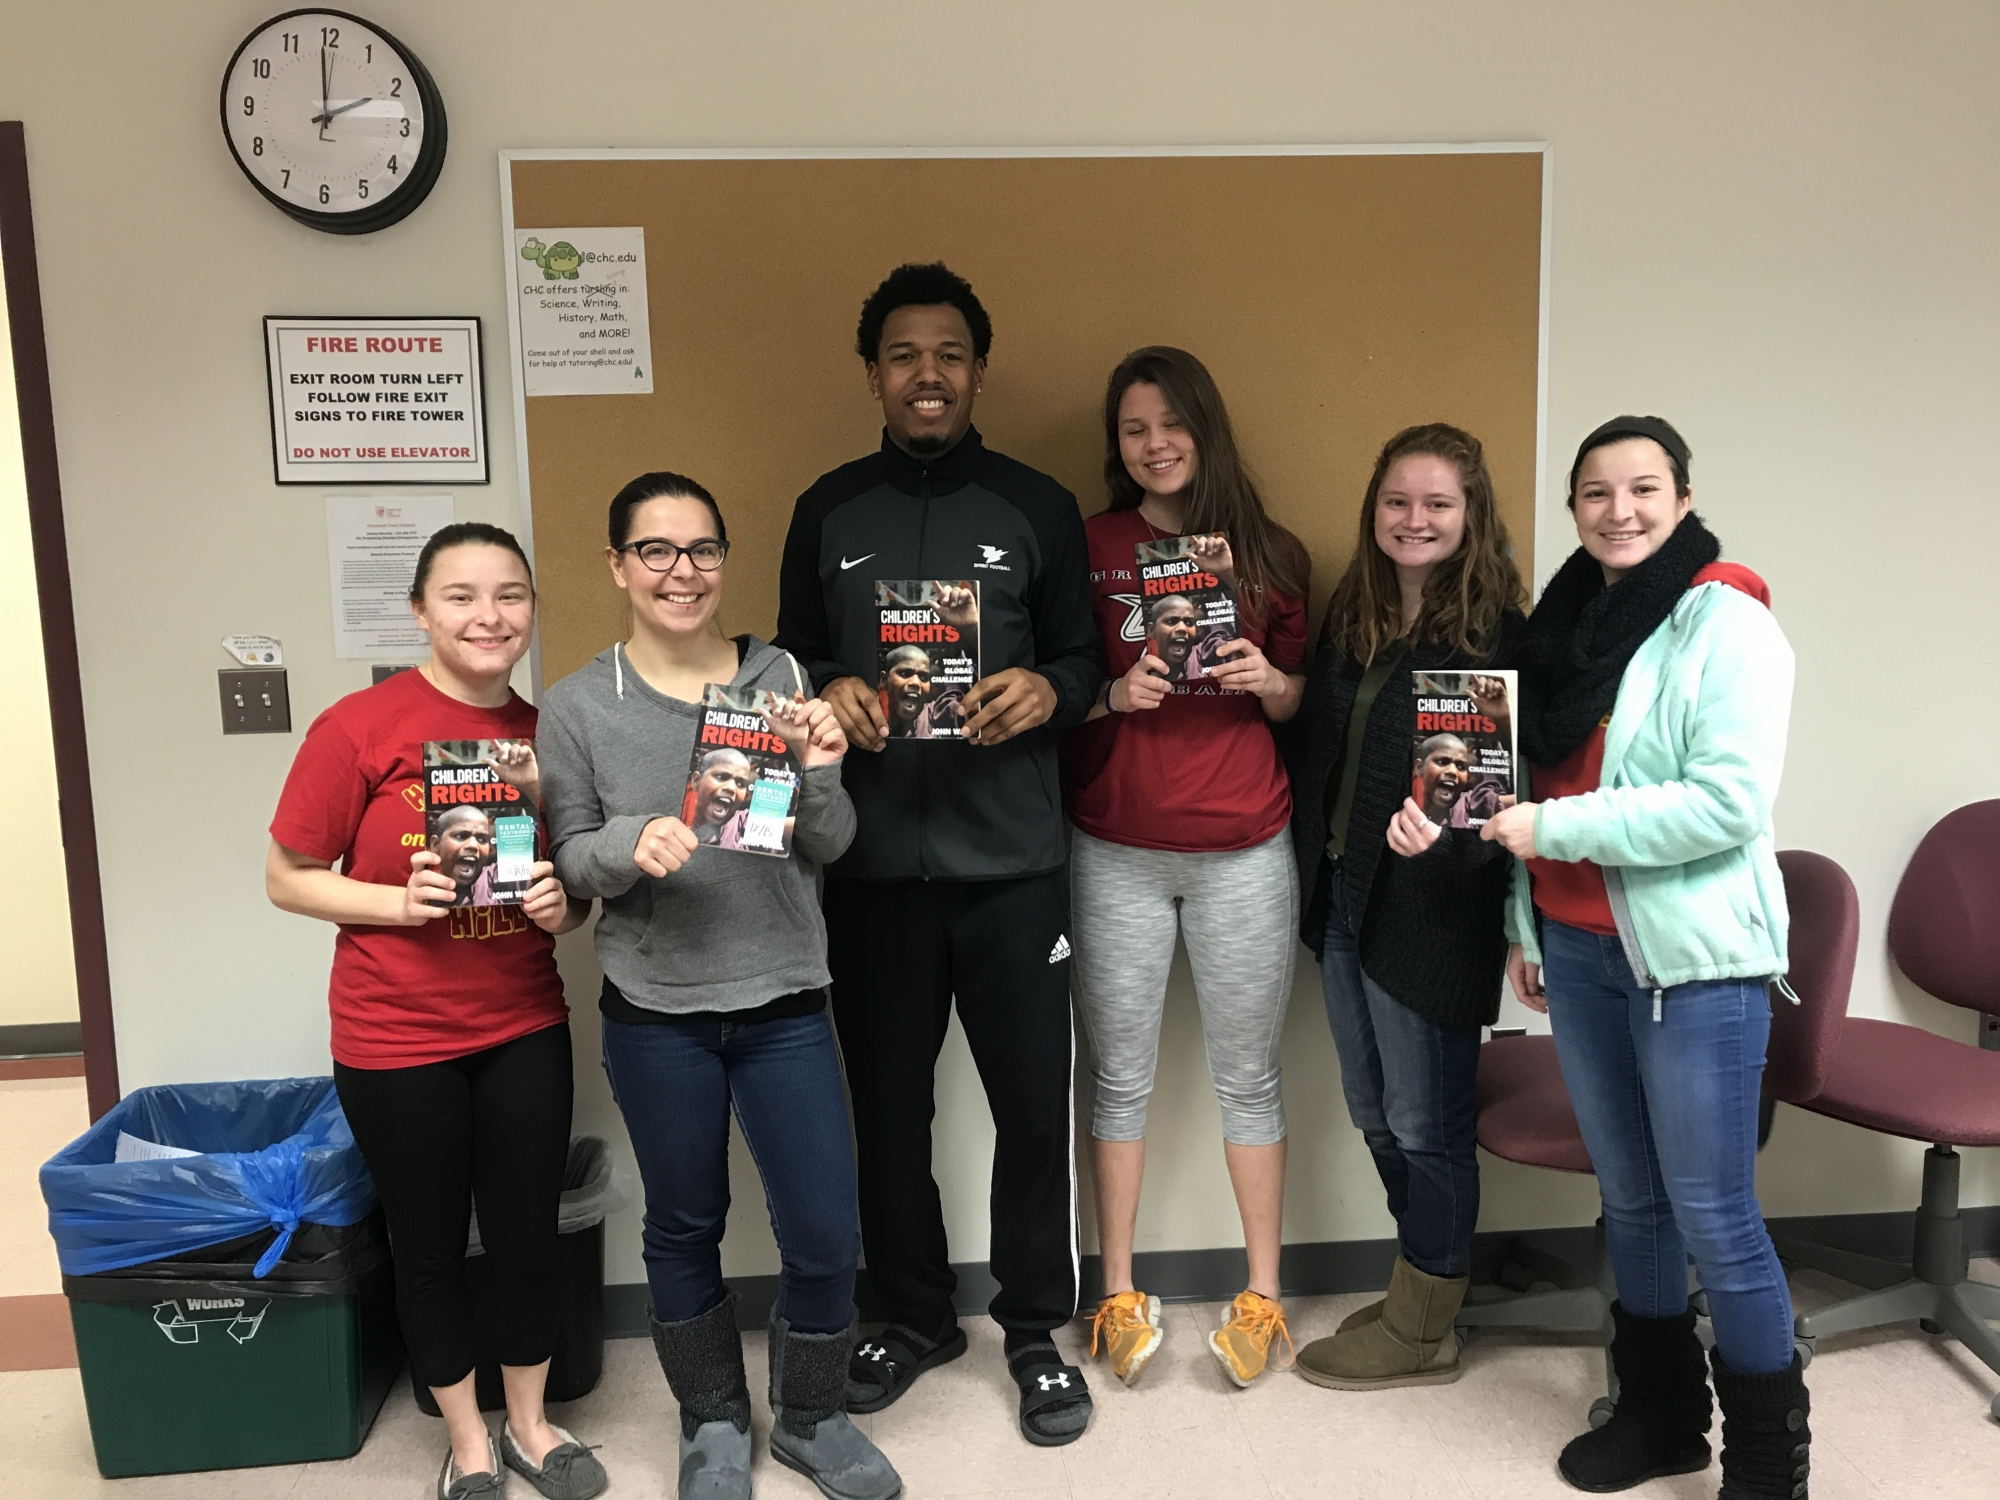 Students in Sara Kitchen's class pose with copies of John Wall's book after he met with the class to discuss his work.